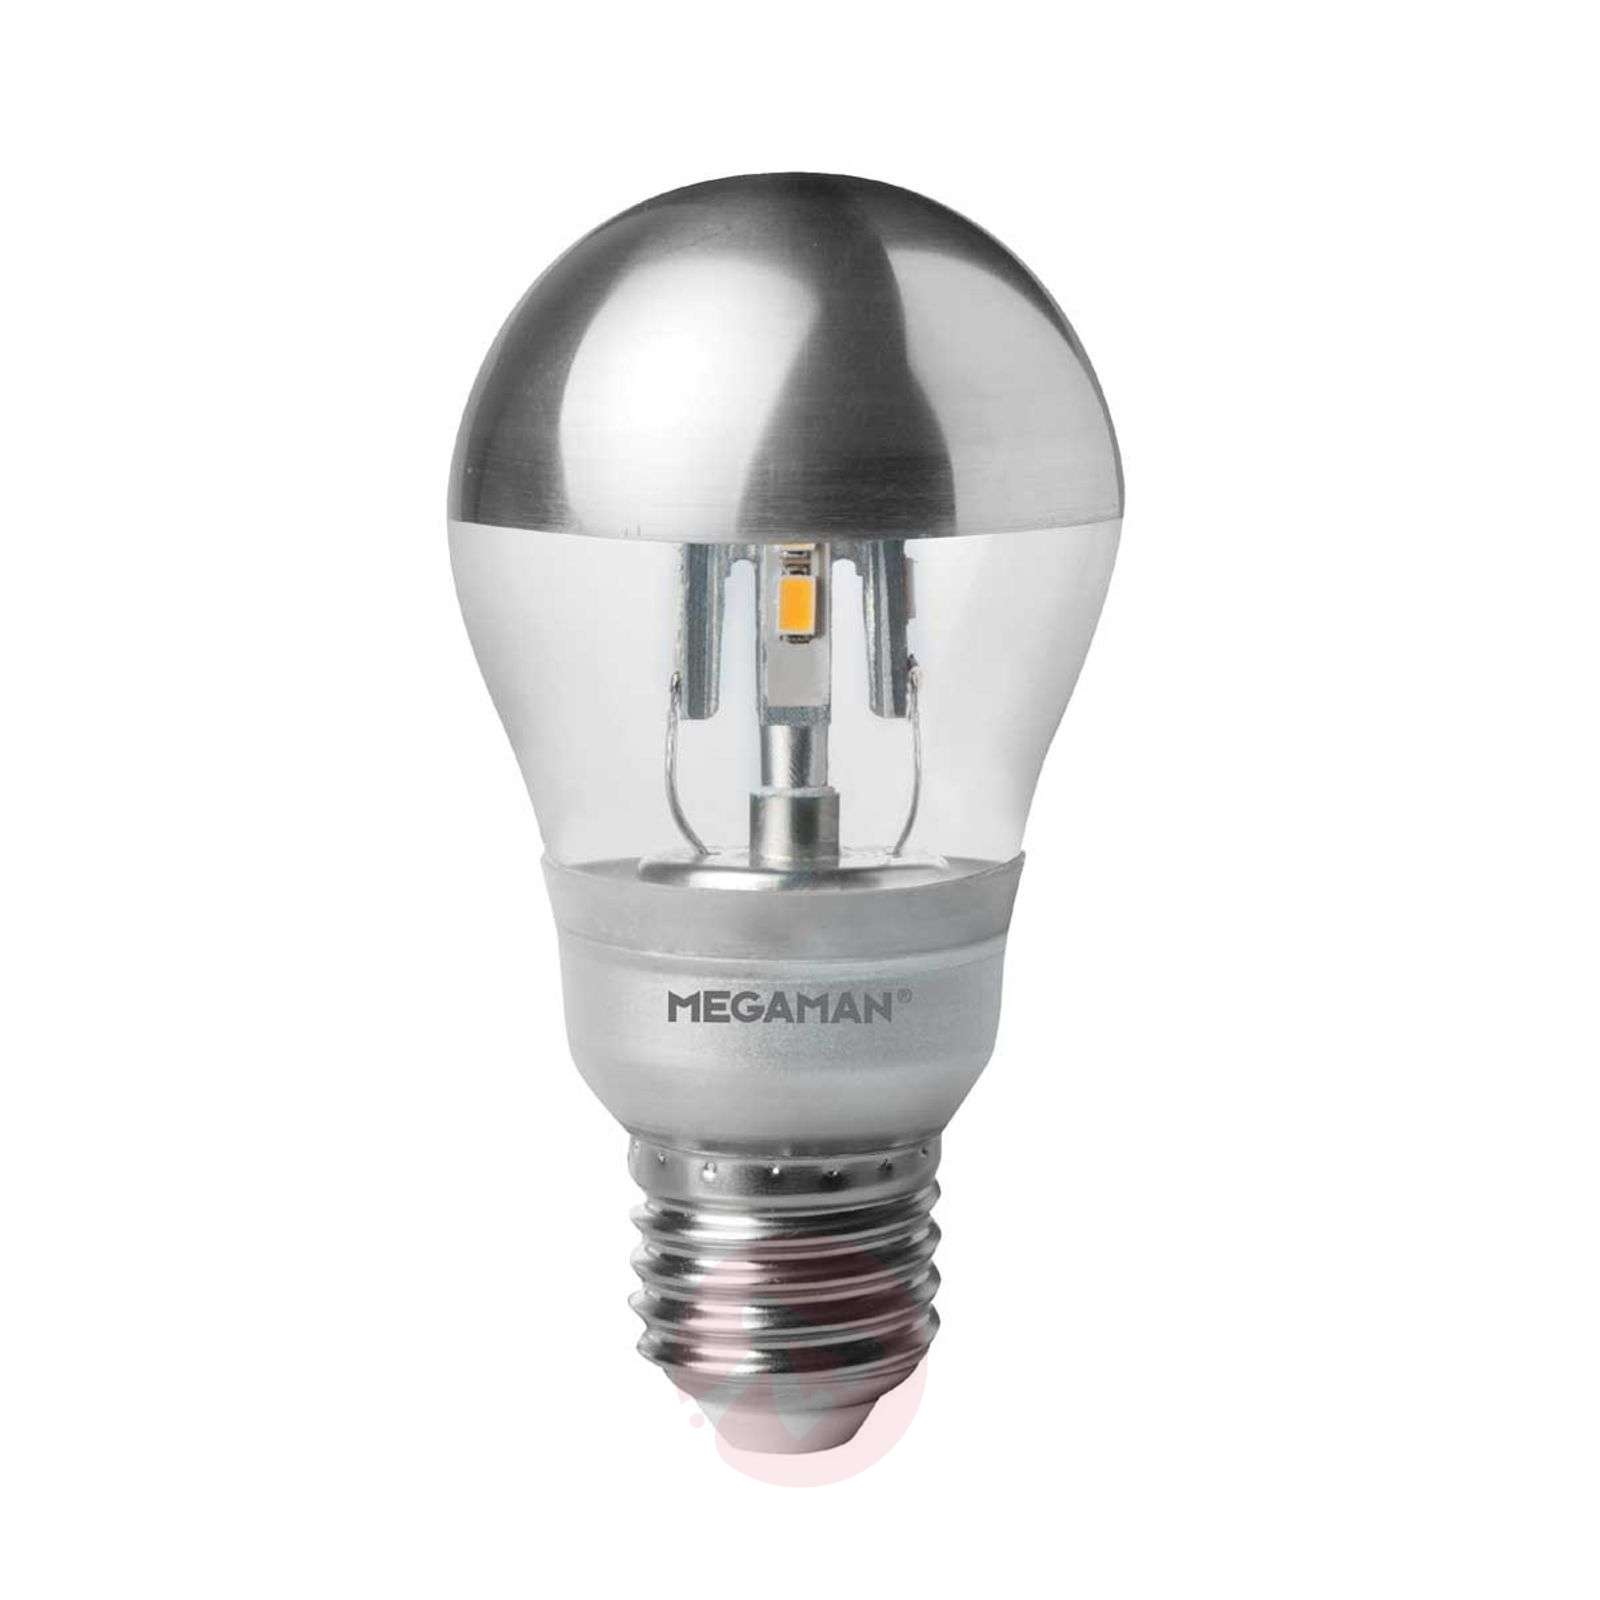 Acquista lampadina con testa a specchio led 5 w e27 for Offerte lampadine a led e 27